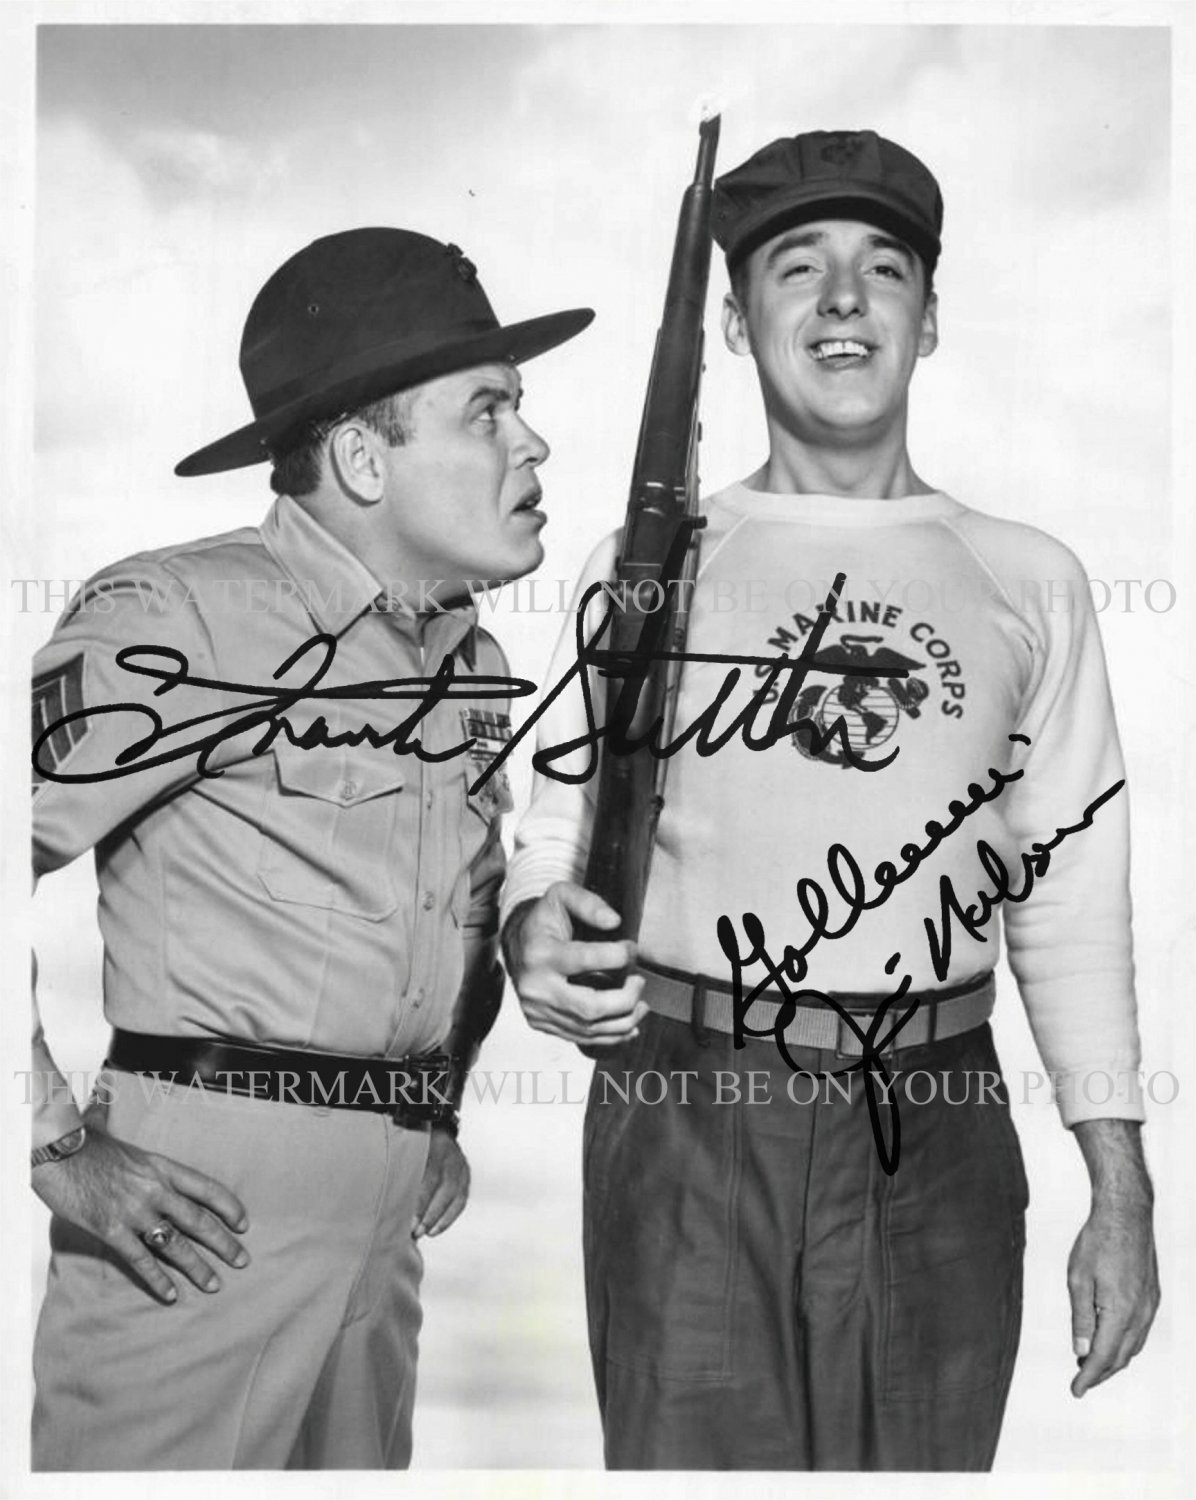 GOMER PYLE TV SHOW CAST SIGNED AUTOGRAPHED 8x10 RP PHOTO JIM NABORS AND FRANK SUTTON